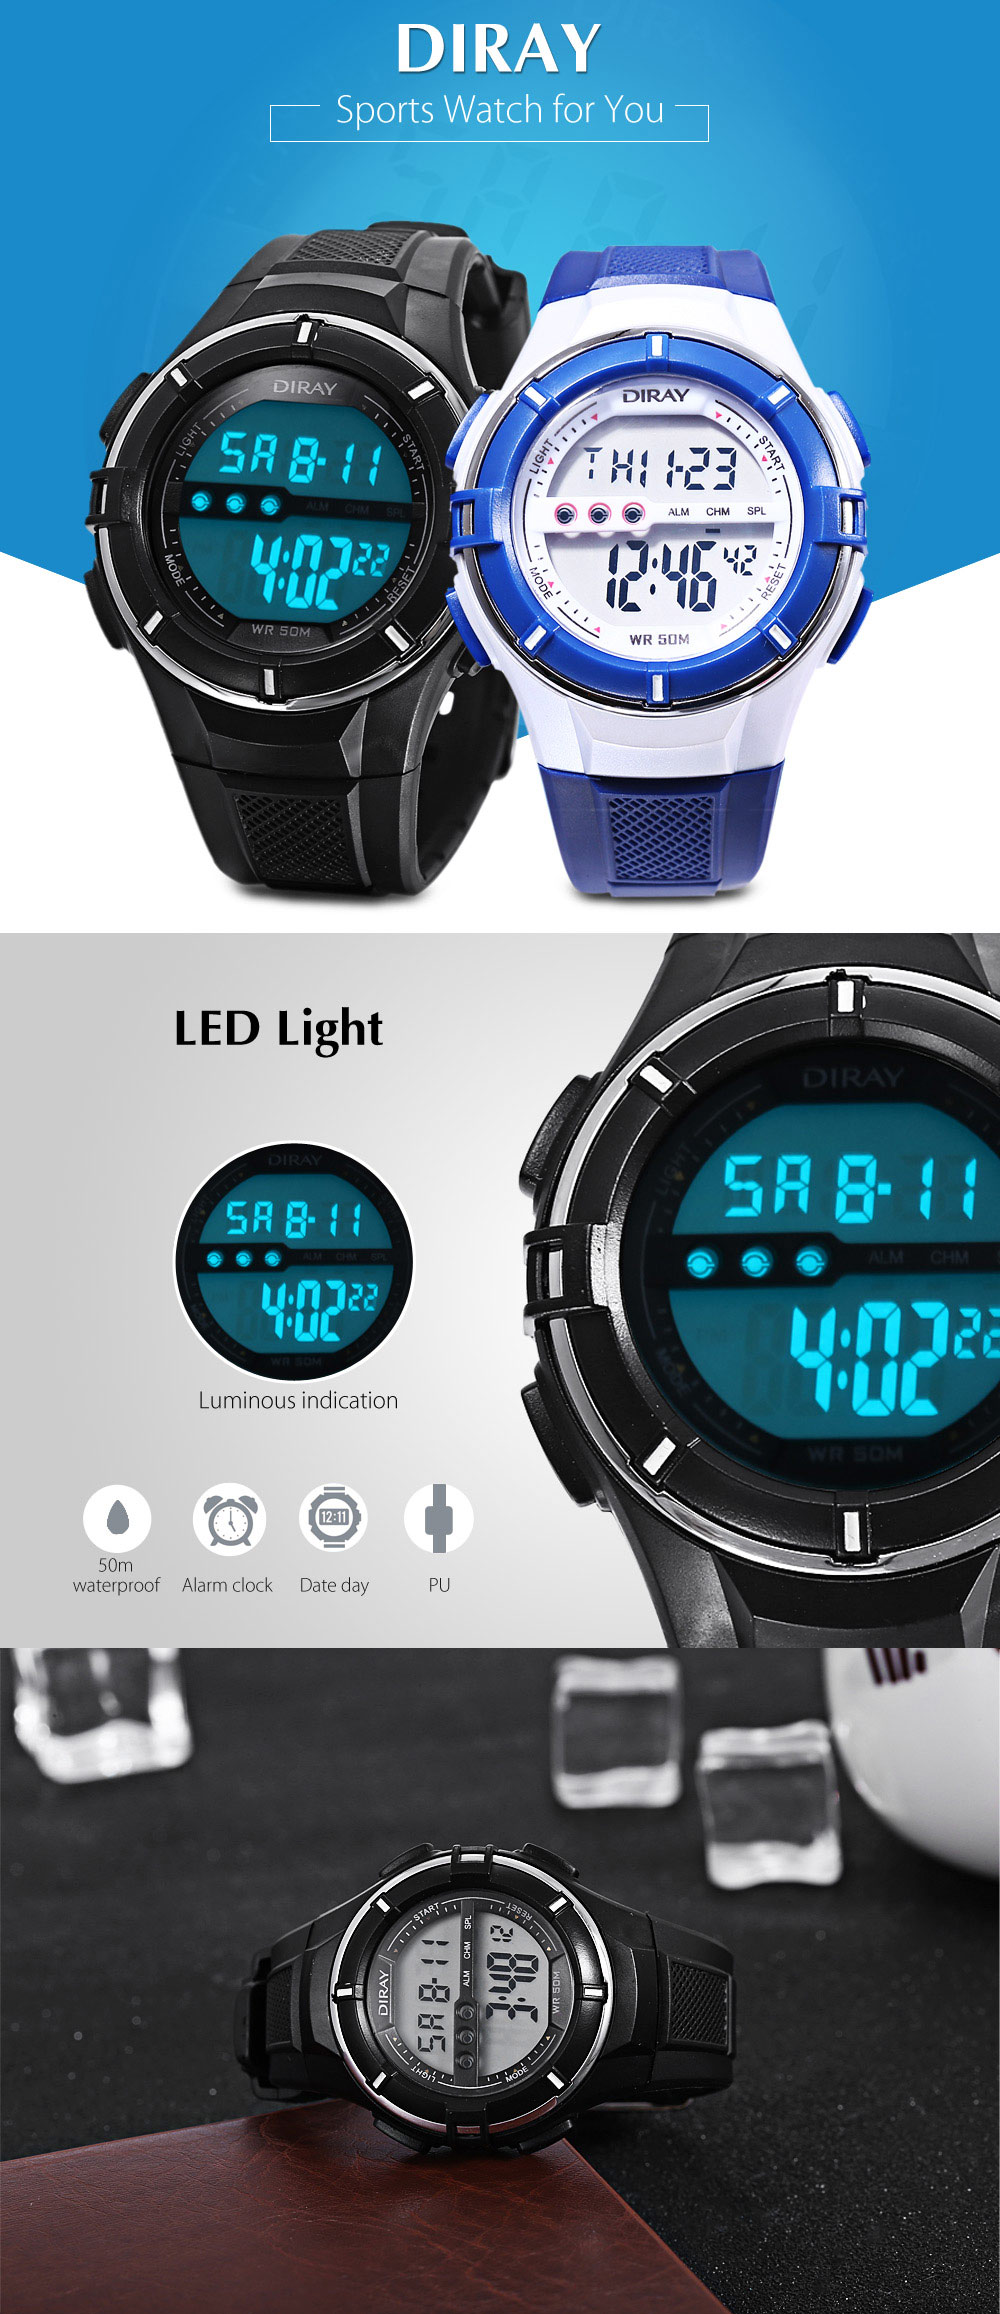 DIRAY DR - 205L Children LED Digital Watch Date Day Display 50m Water Resistance Sports Wristwatch